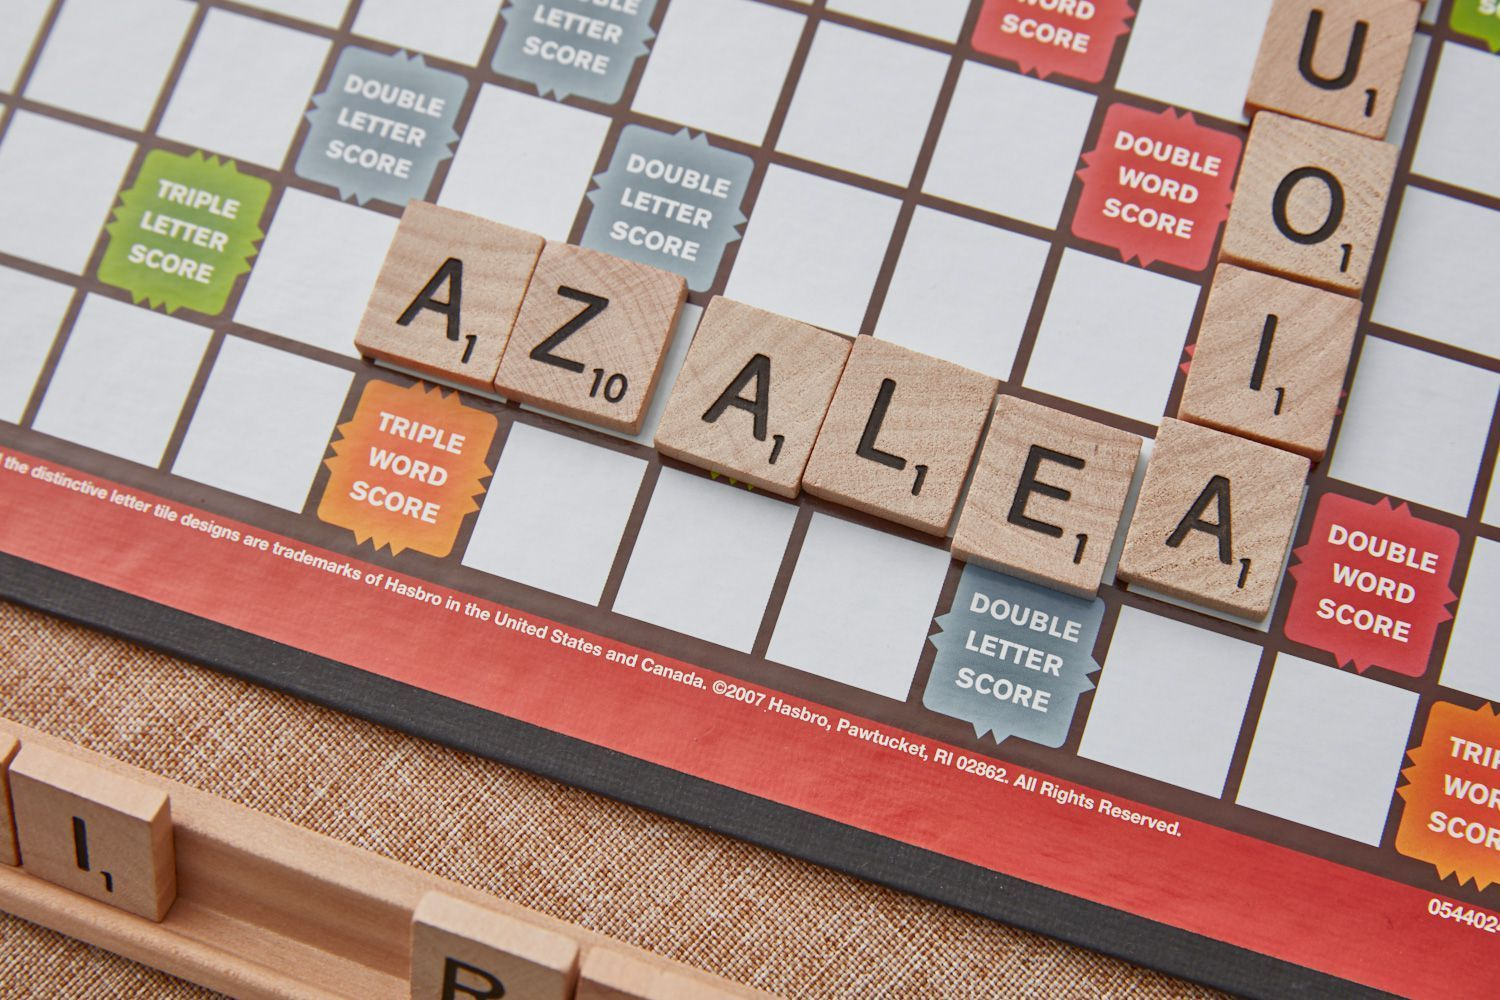 If you get stuck with a rack full of vowels in Scrabble